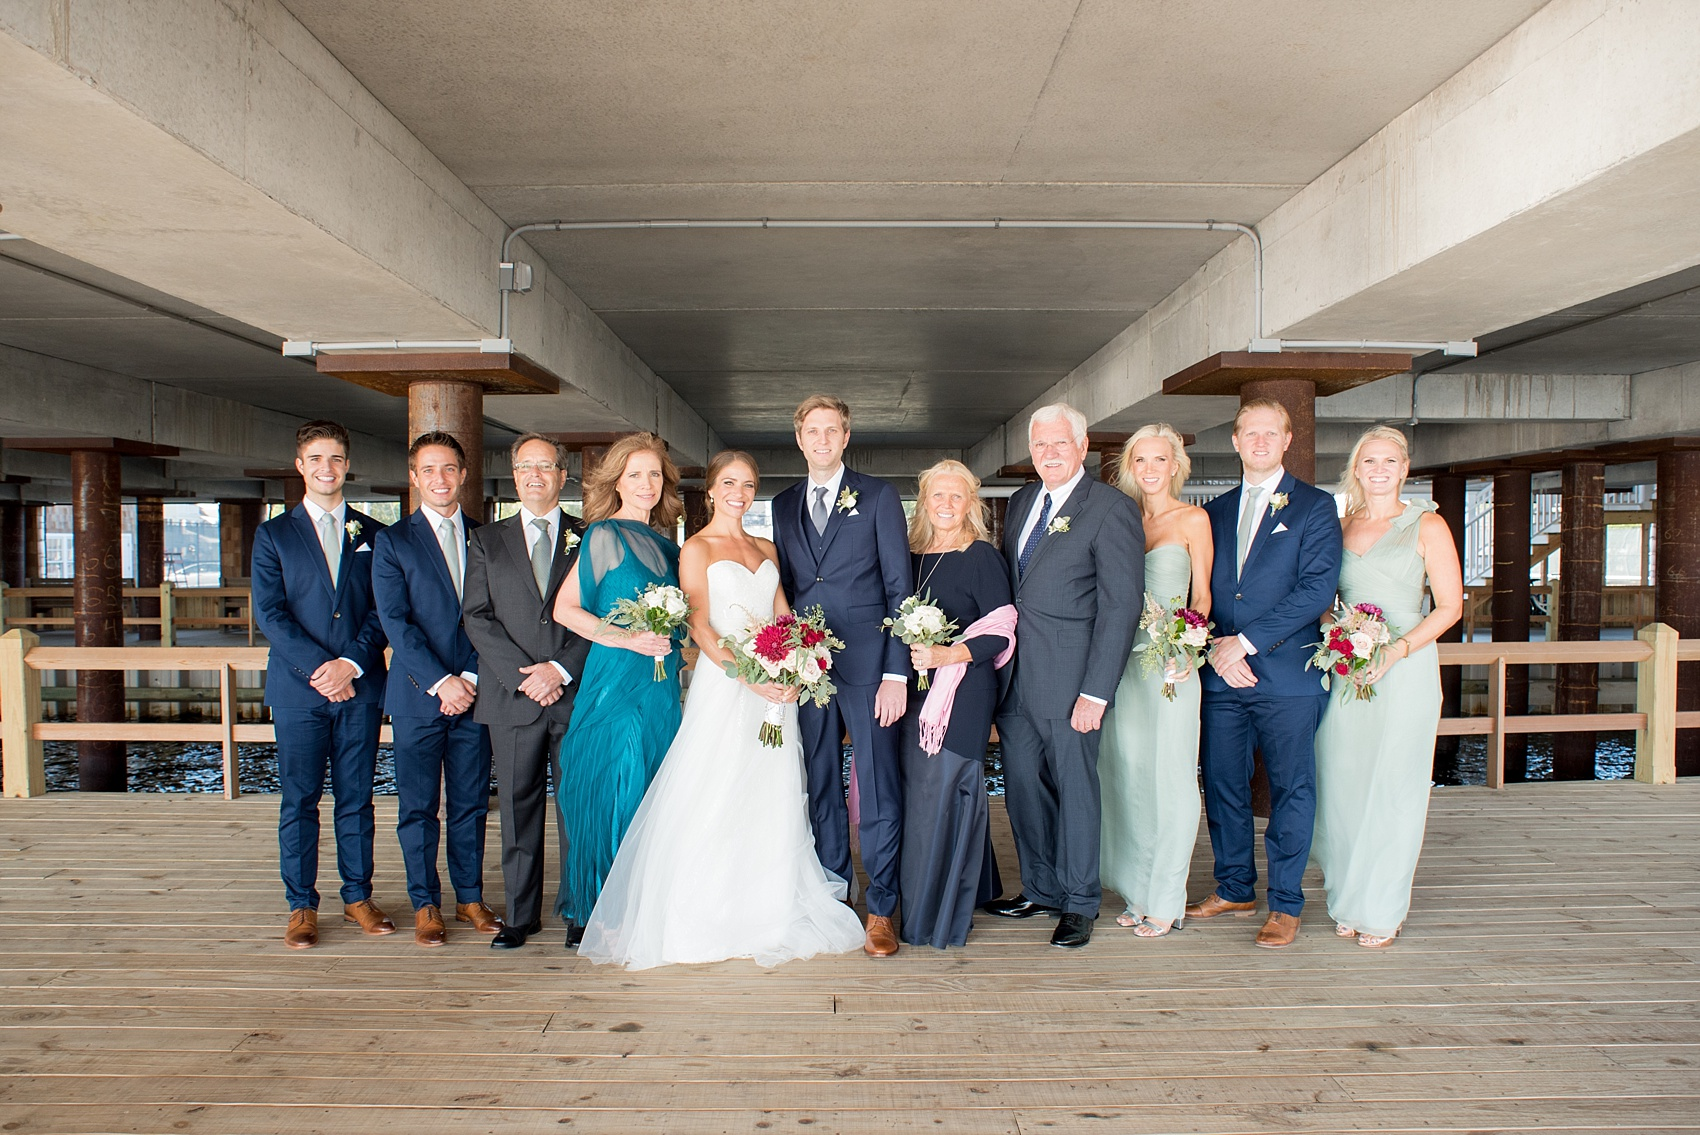 Mikkel Paige Photography picture of a Bay Head Yacht Club nautical wedding. The bride and groom's family pose for a photo.